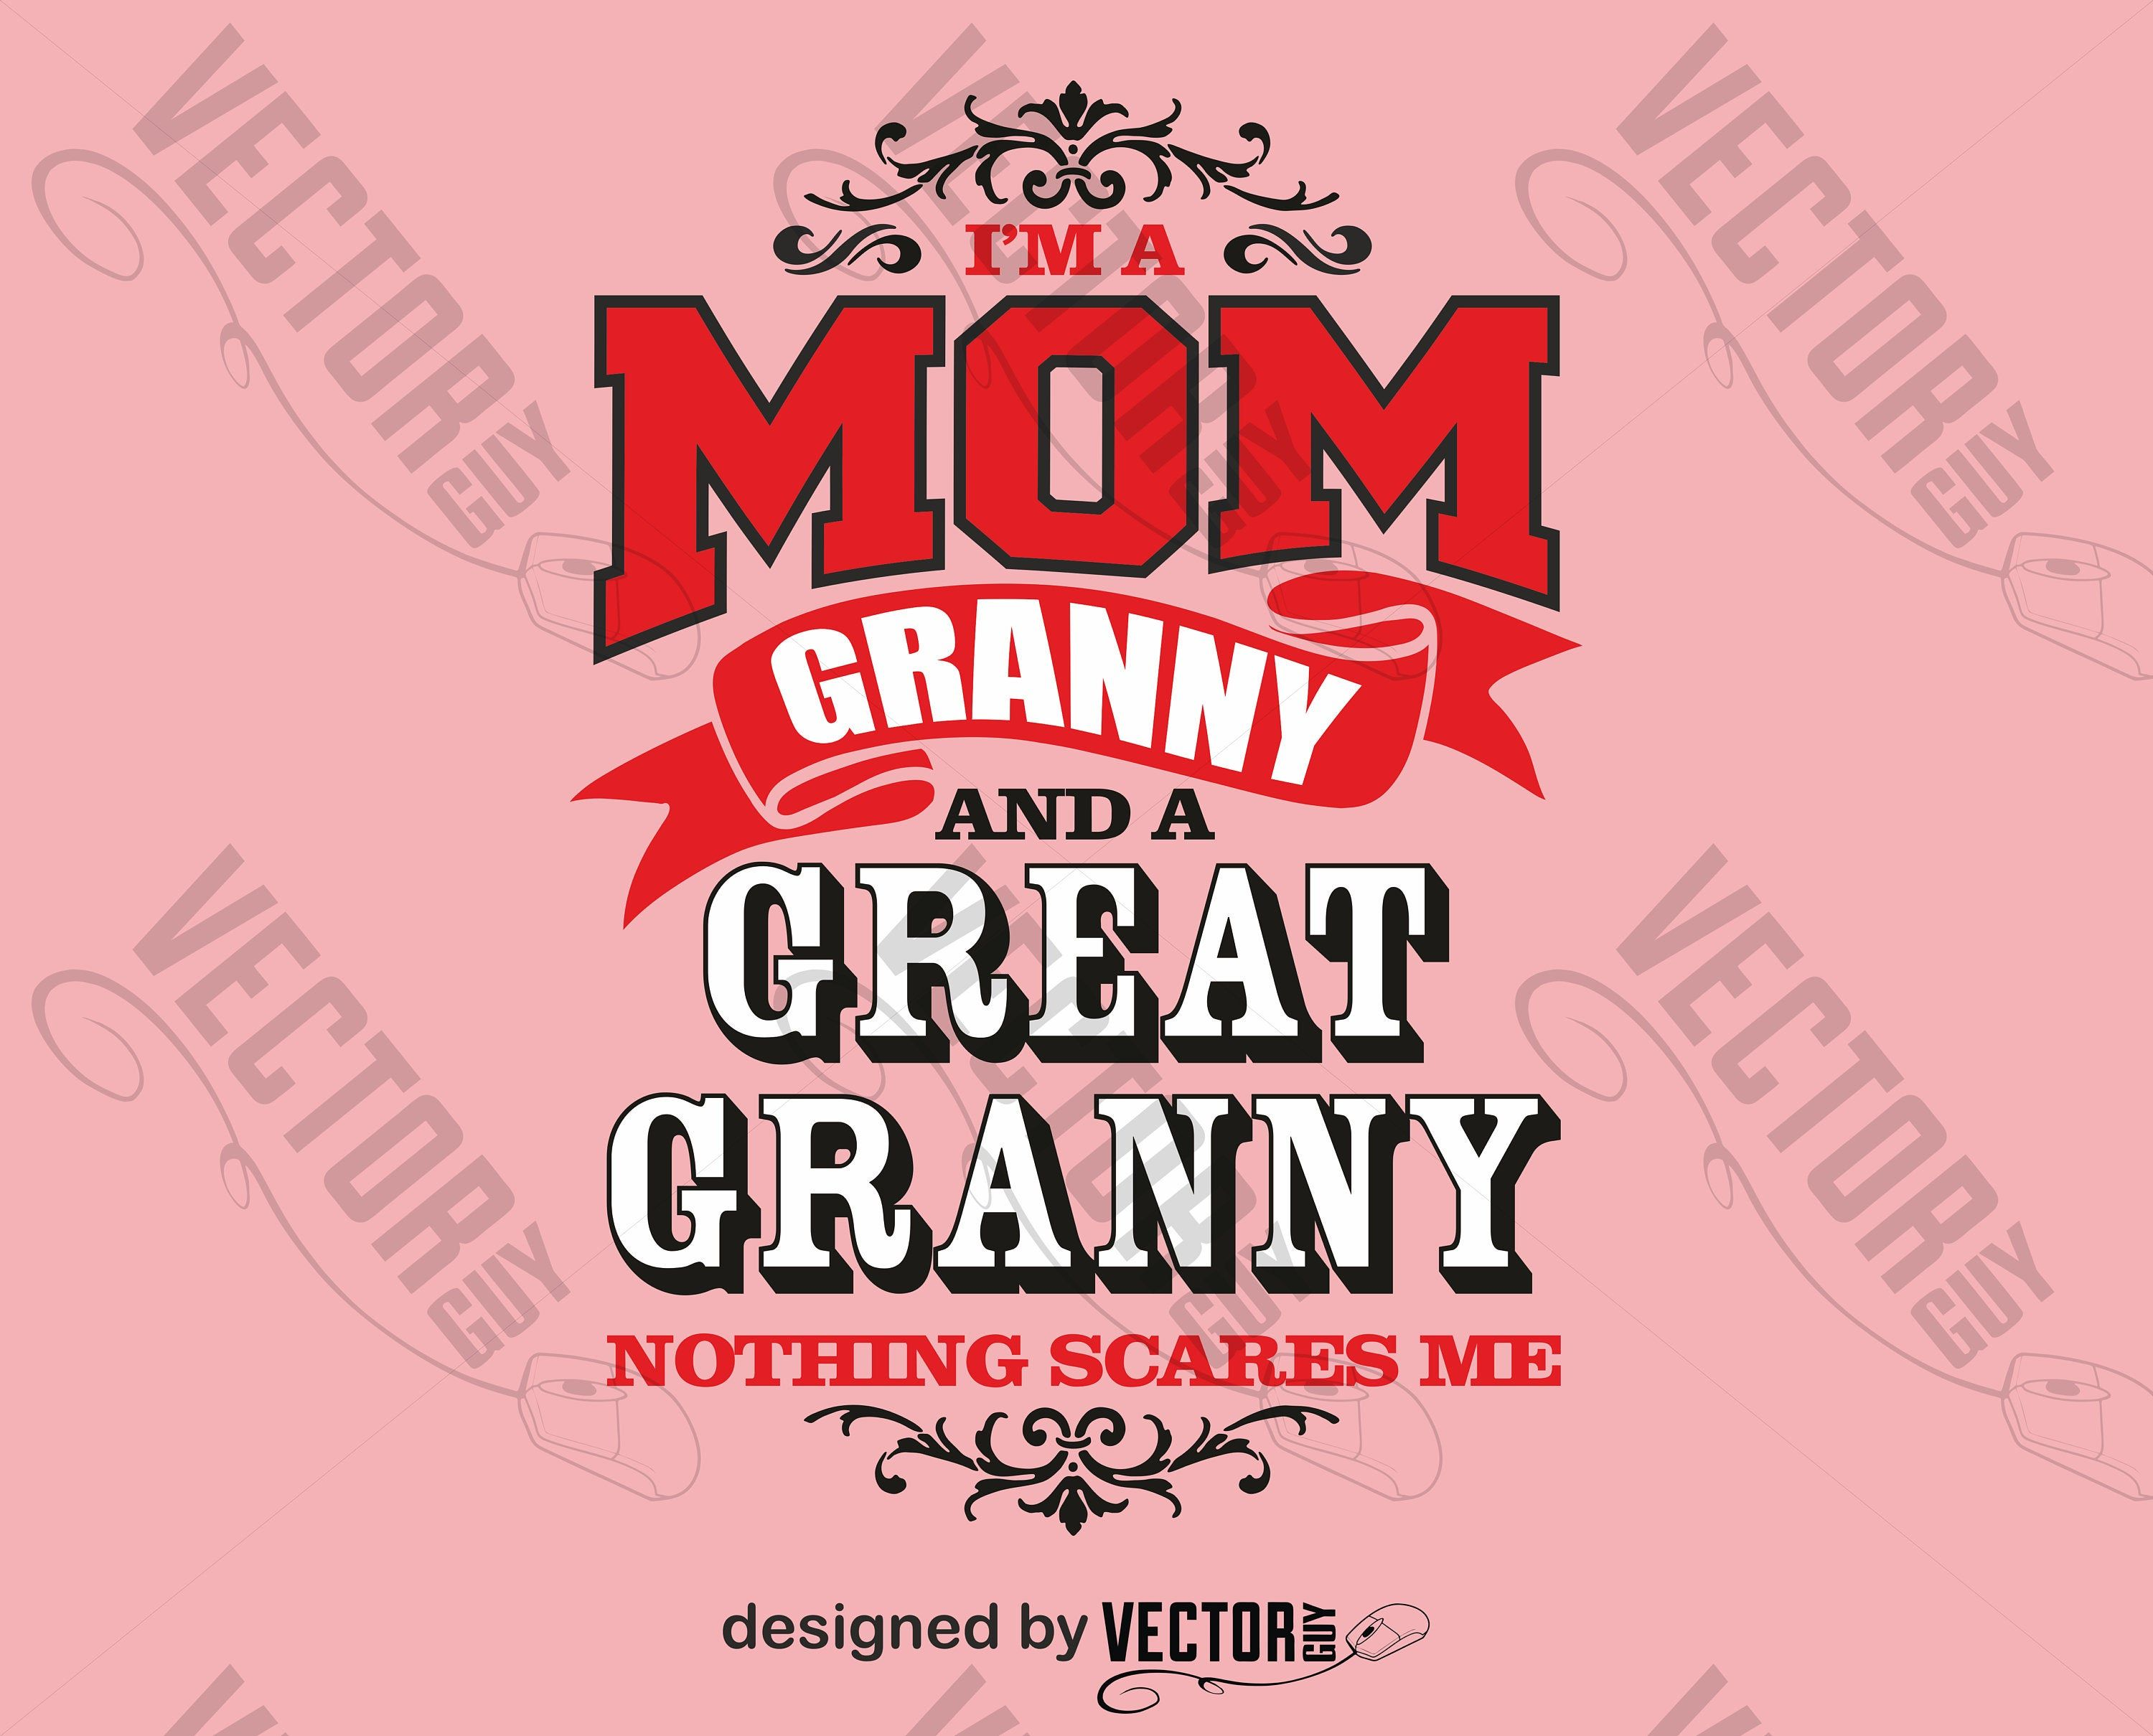 I'm a Mom, Granny and a Great Granny, Nothing Scares Me